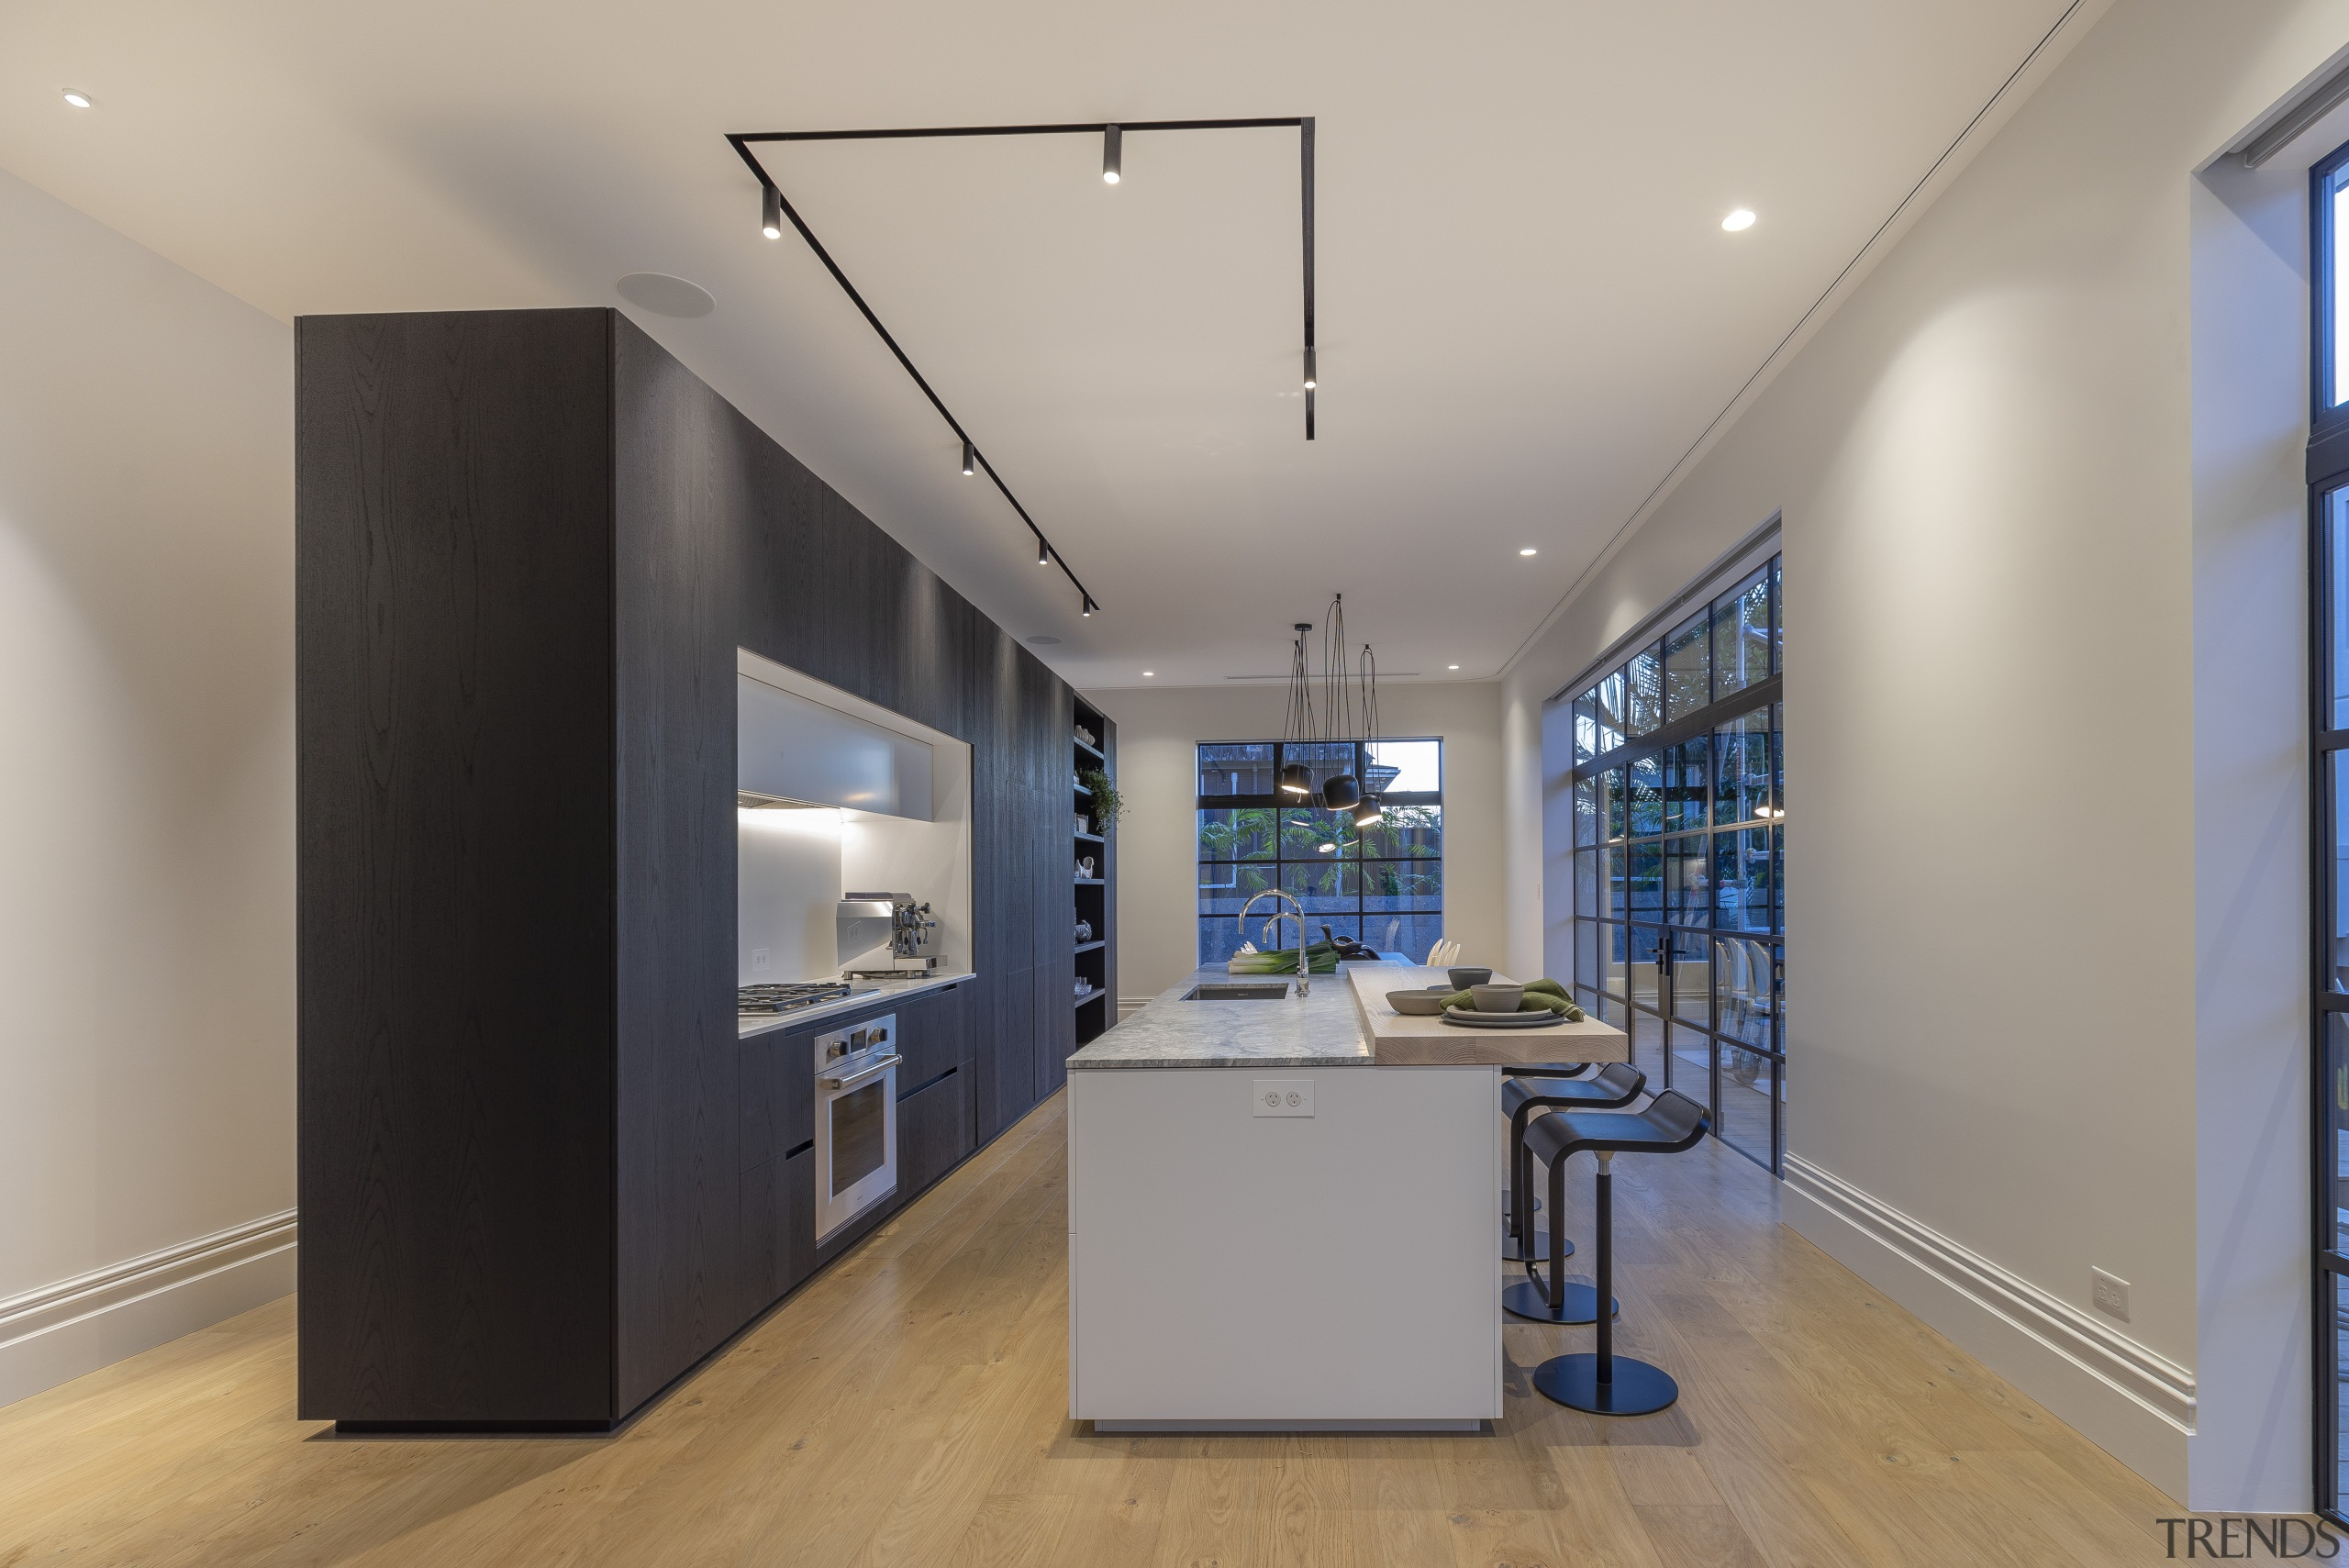 Strong, clean lines were appropriate for the new architecture, building, ceiling, daylighting, design, floor, flooring, furniture, glass, hardwood, home, house, interior design, light fixture, lighting, office, property, real estate, room, space, table, wall, wood flooring, gray